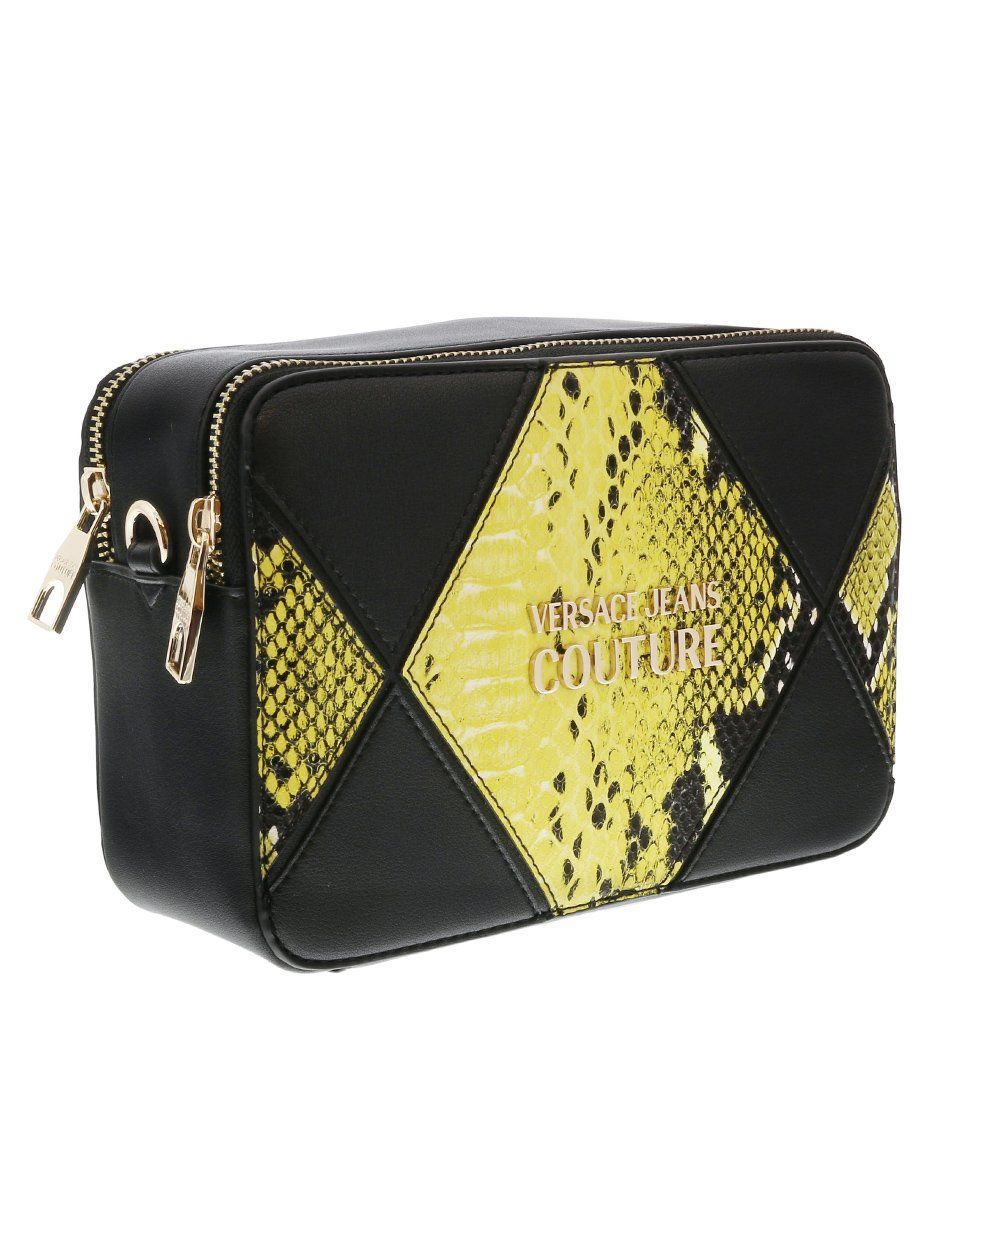 VERSACE JEANS COUTURE Diamond Patch Shoulder bag Black/Yellow